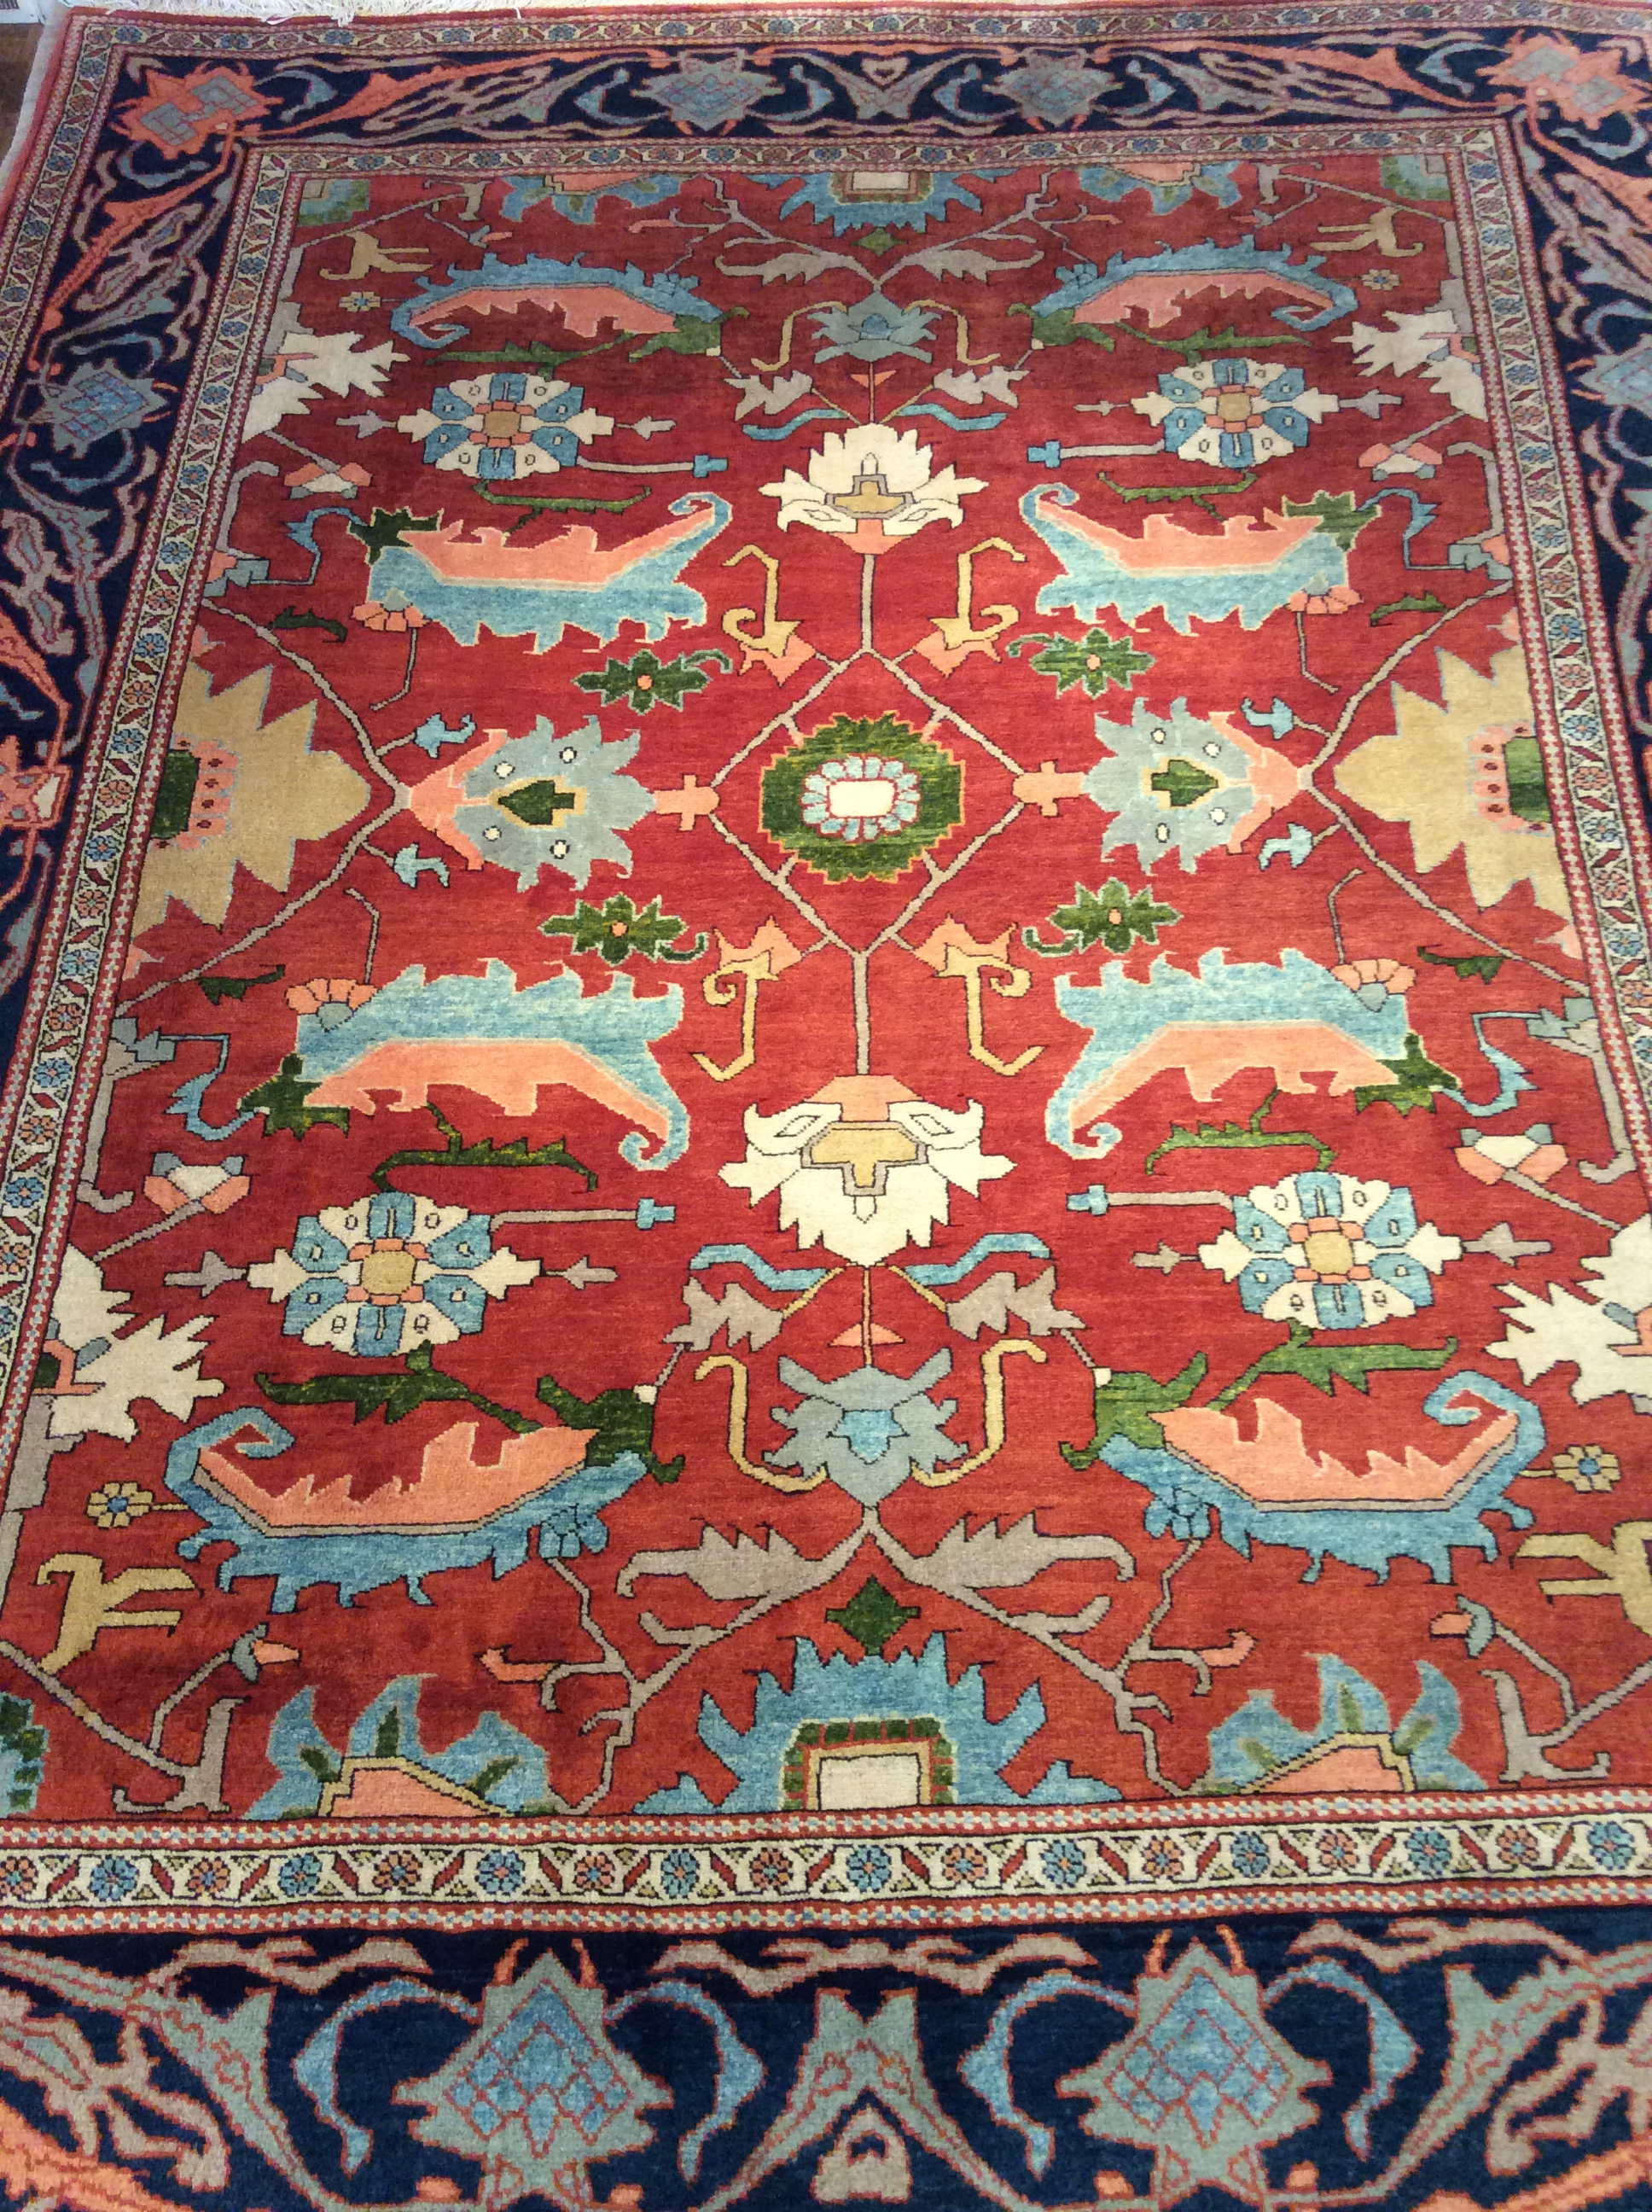 rug fine you in interest rugs we or imported questions stop contact to our with invite england any new us gallery